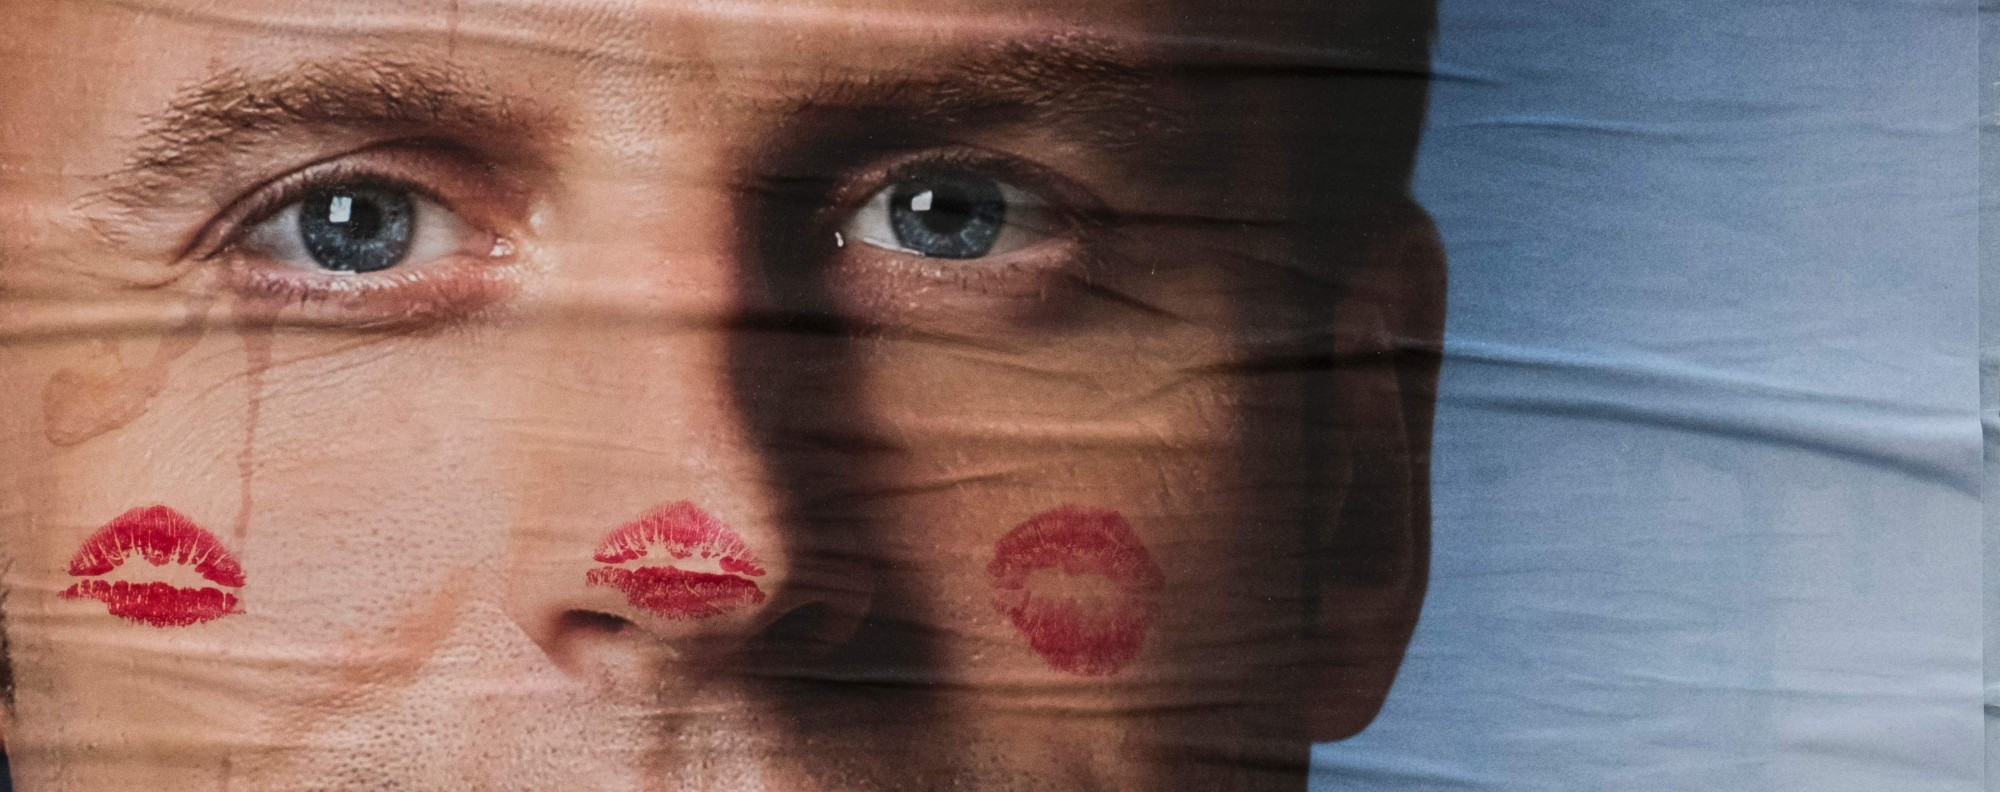 A vandalised Macron campaign poster. Photo: AFP